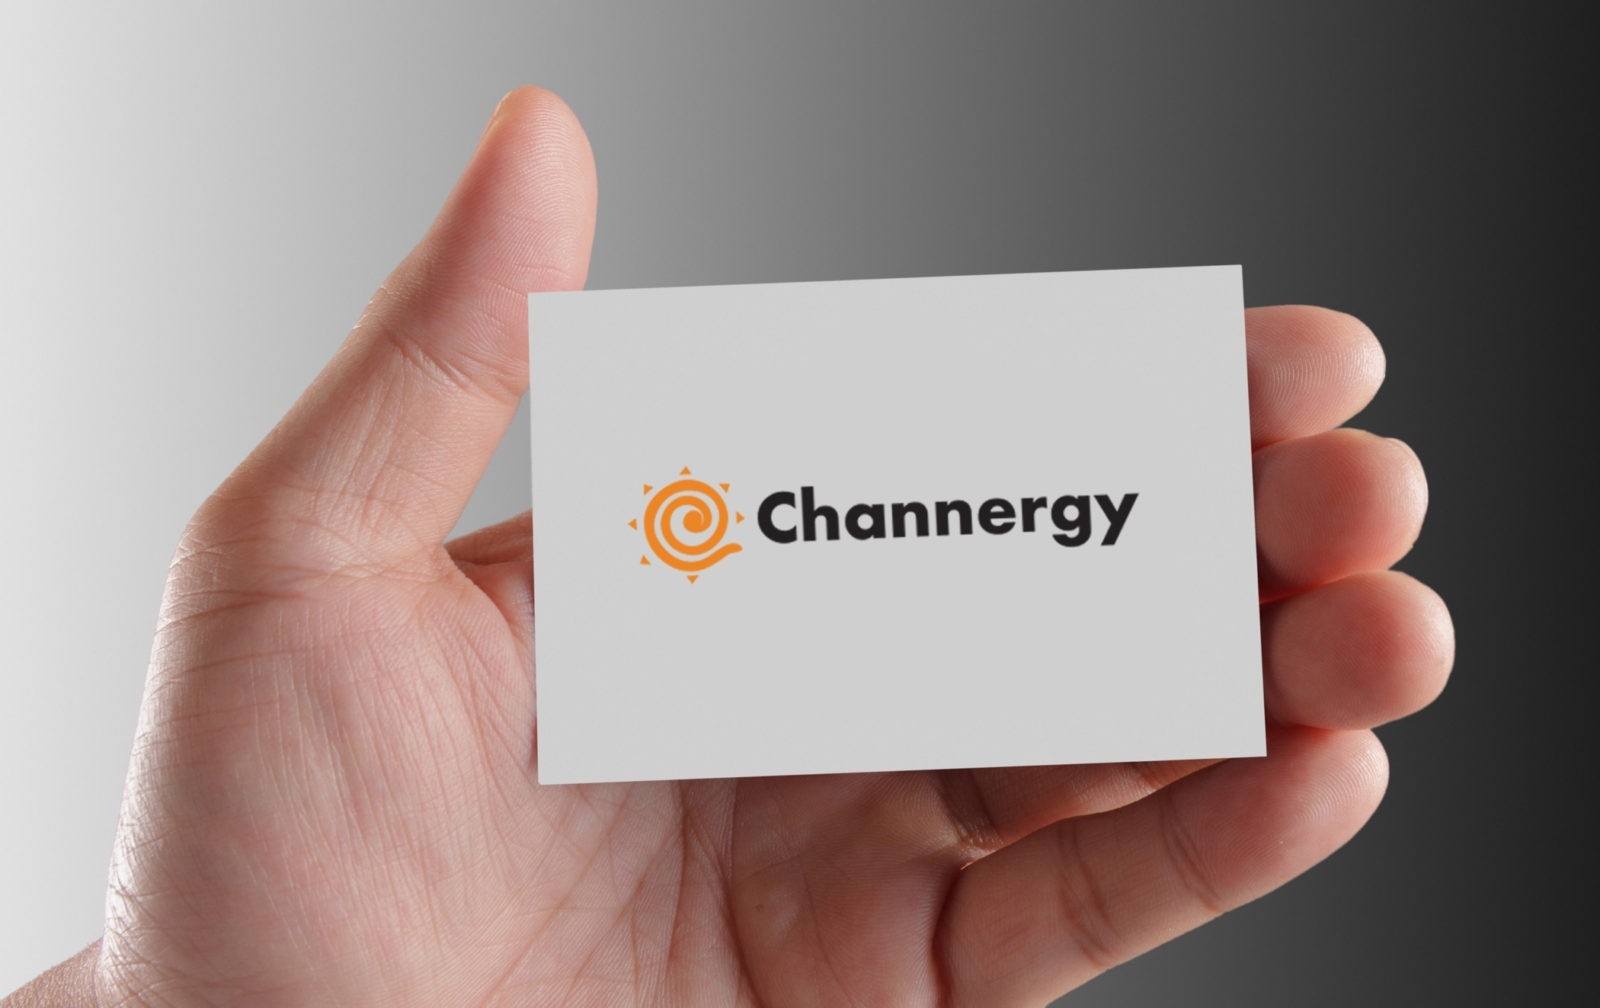 hand holding business card – Channergy